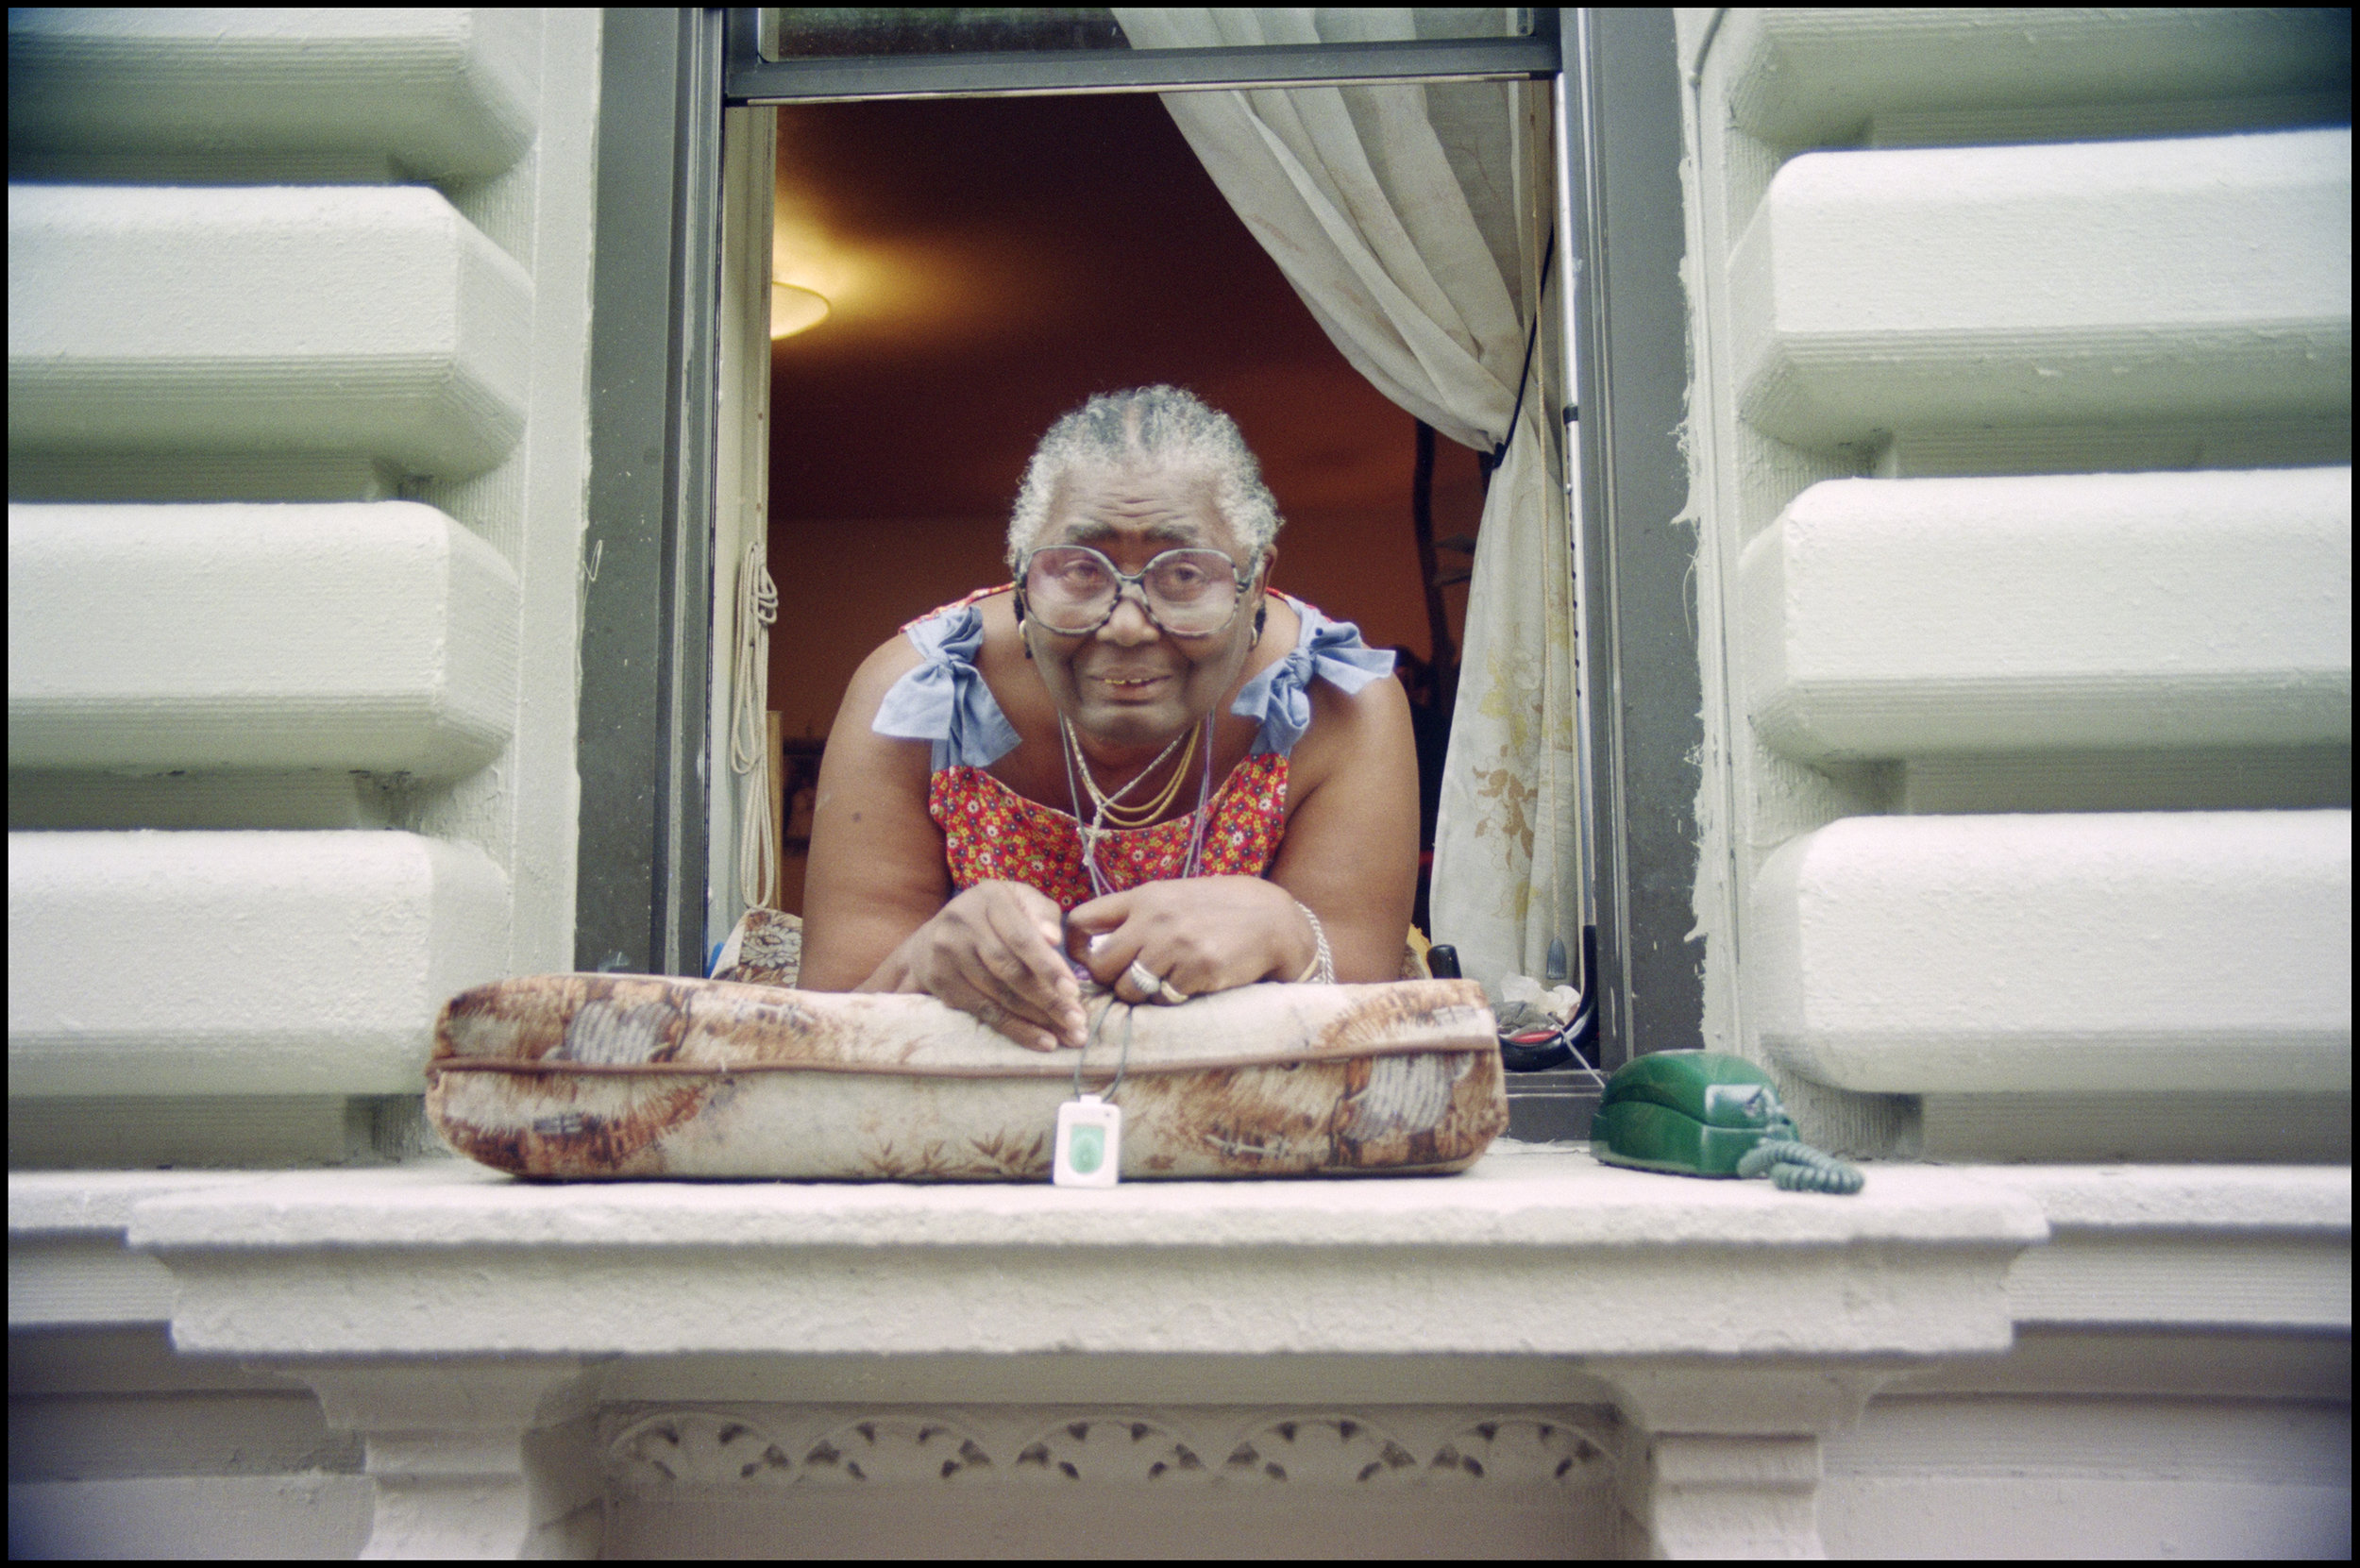 Tenant in window, location unknown. September 1996. Photograph by Larry Racioppo.